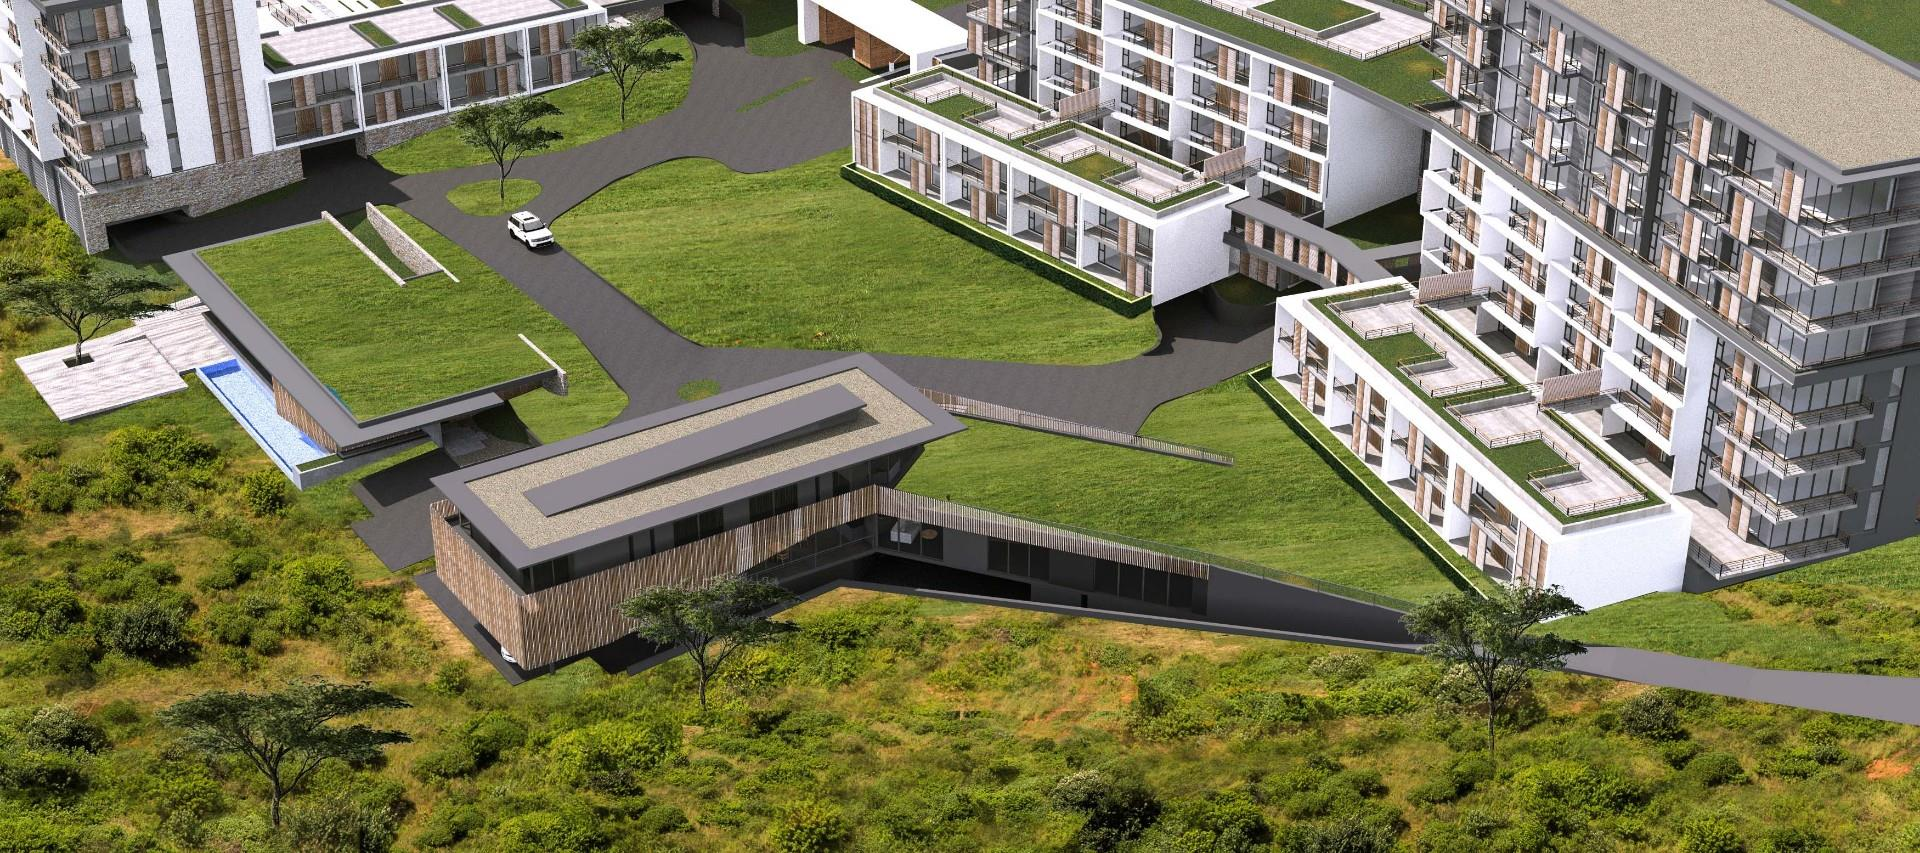 1 Bedroom Apartment For Sale in Sibaya Precinct